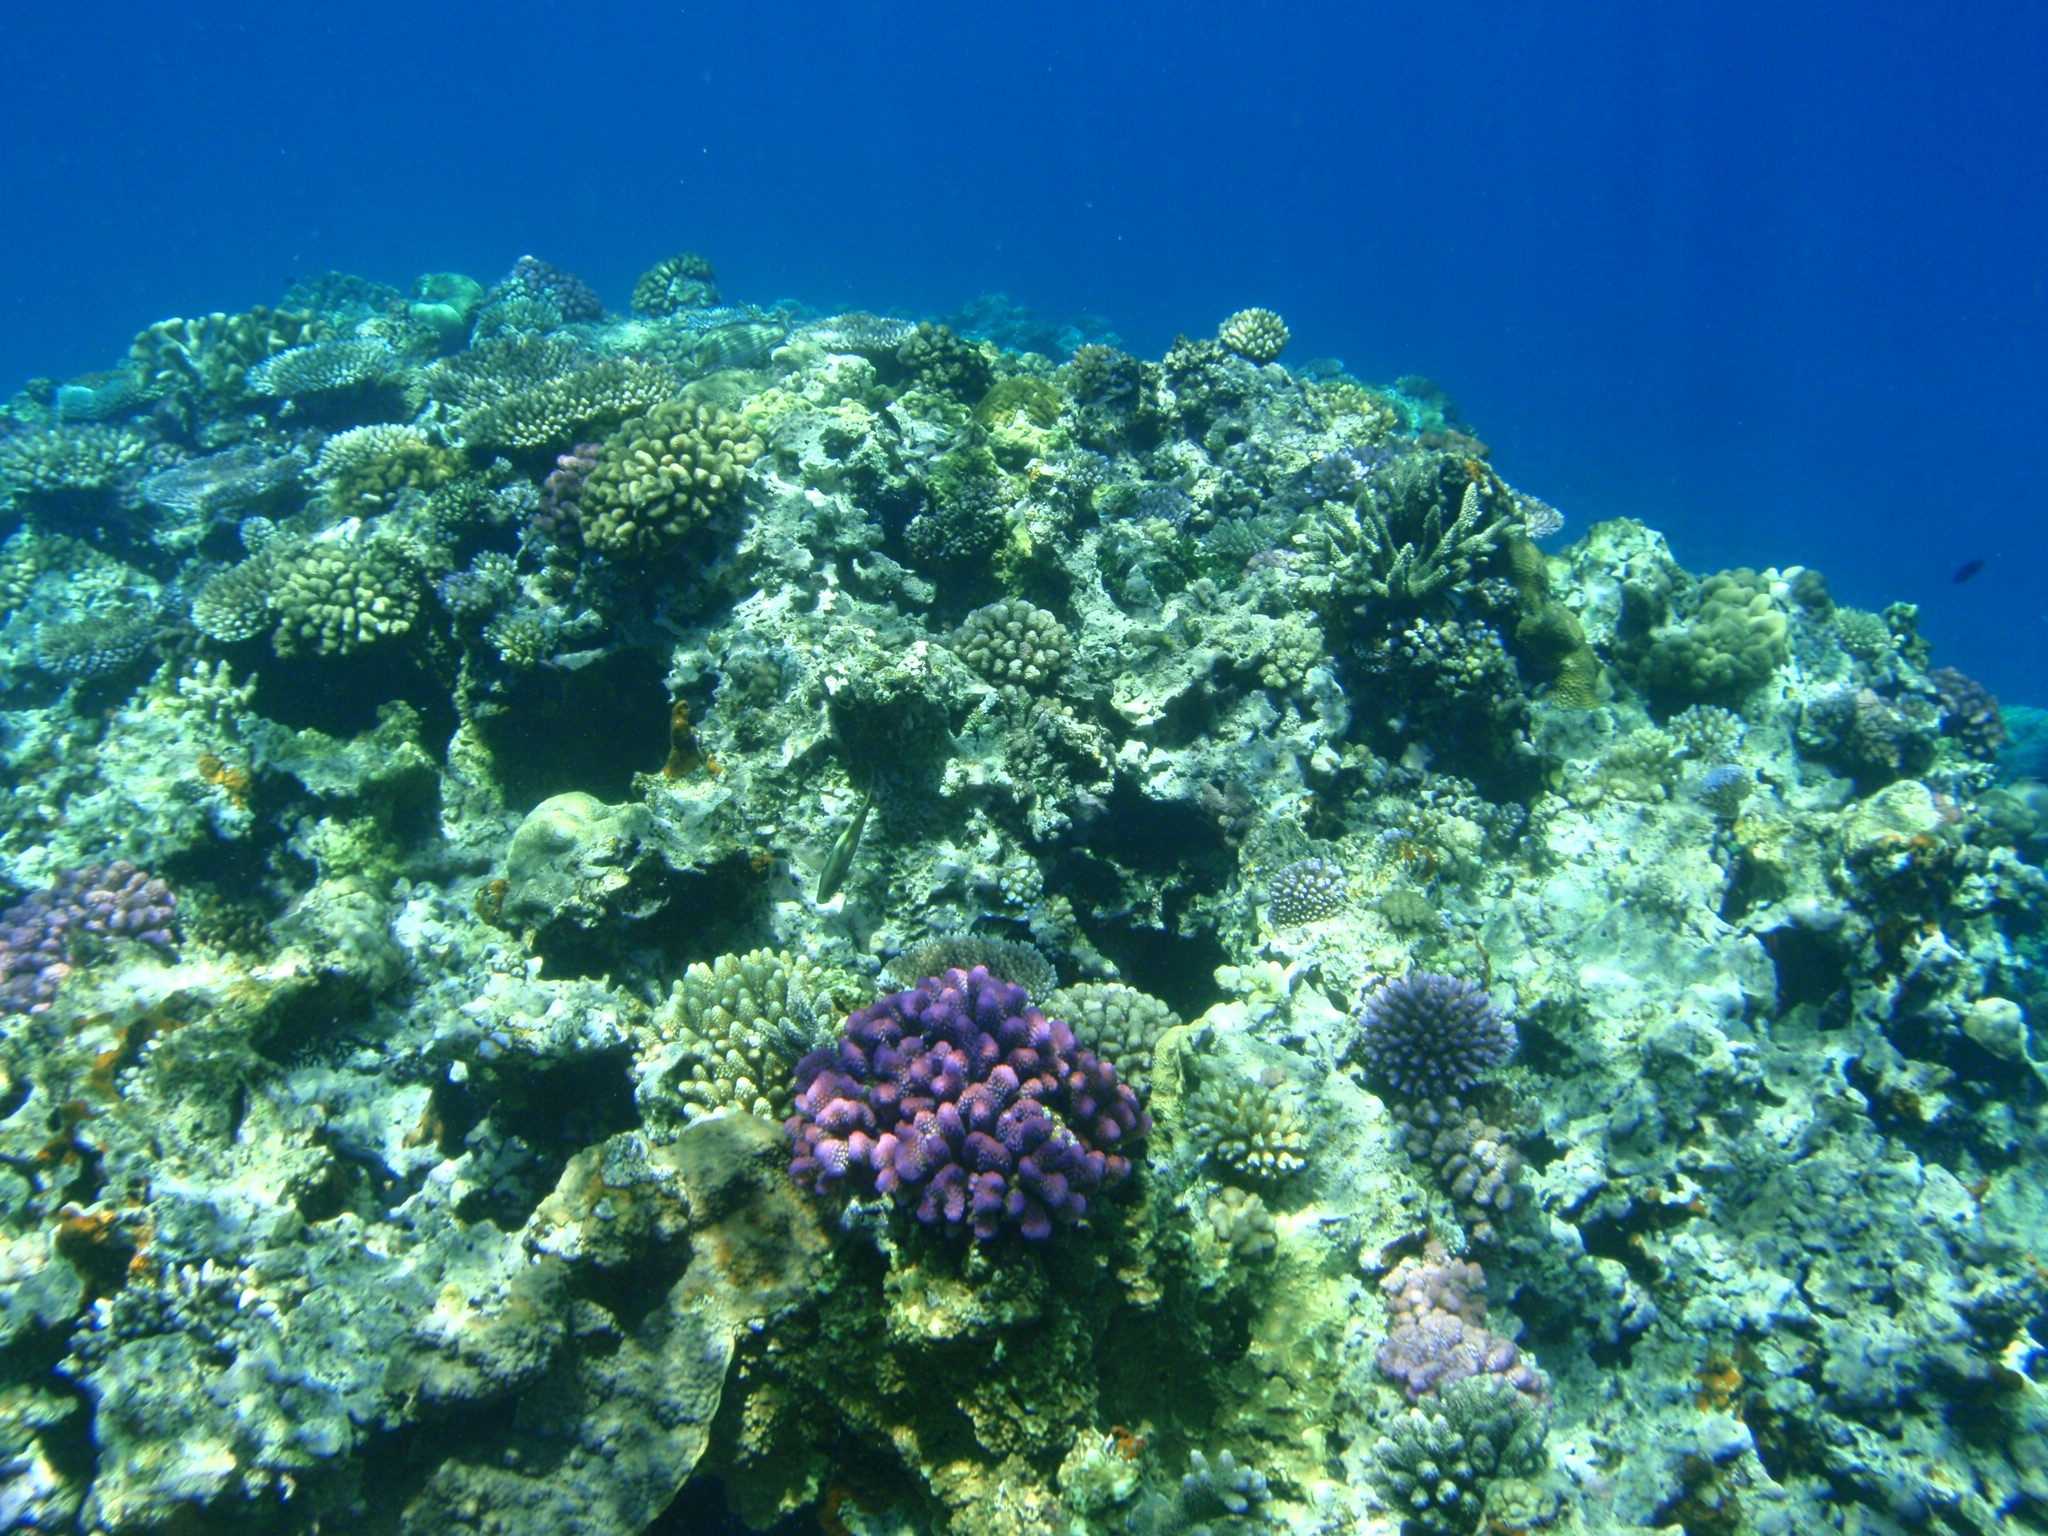 The world's coral reefs face bleak outlook